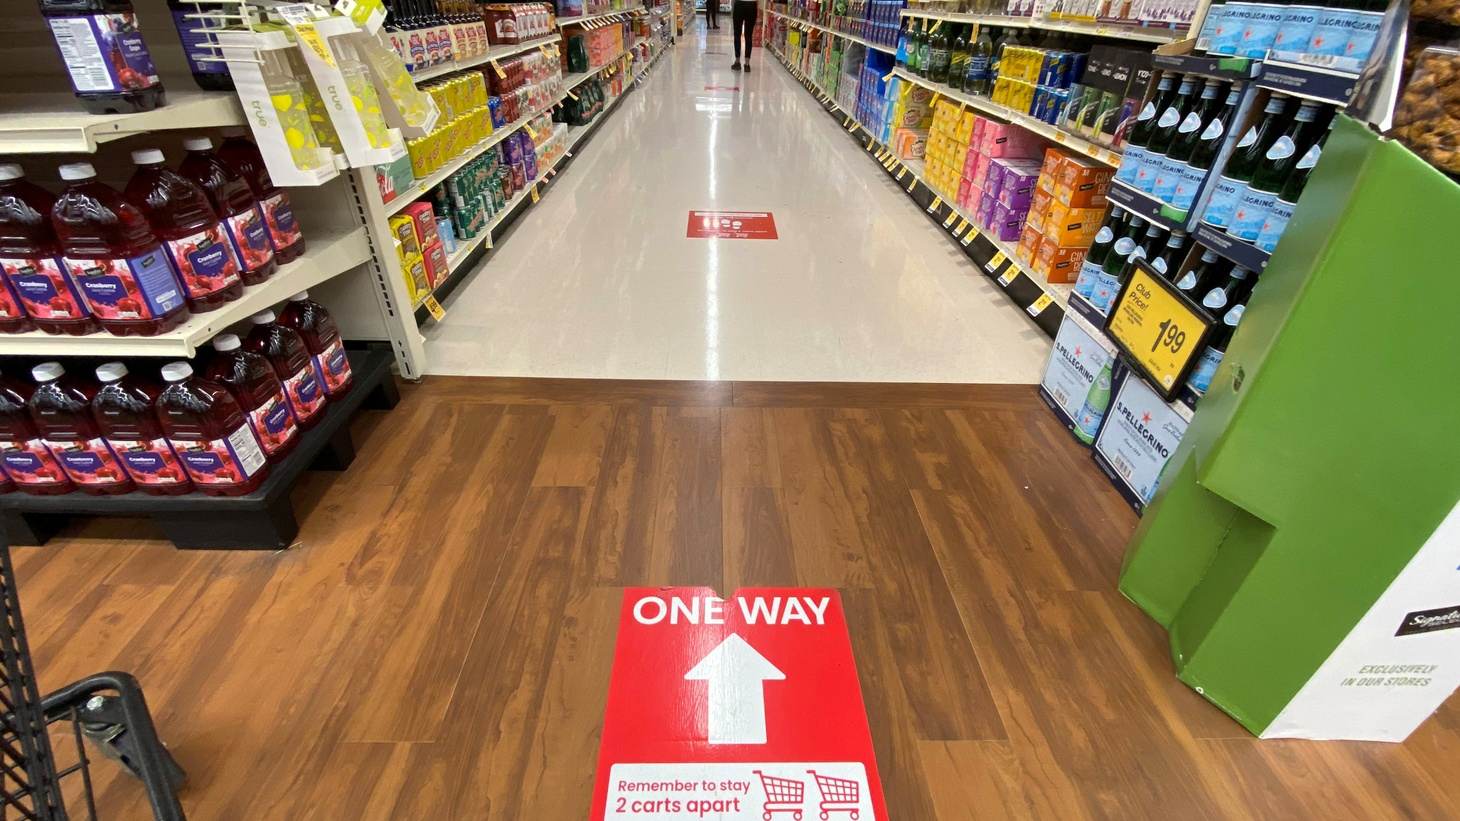 A direction sign on the floor at a Vons grocery store is pictured during the outbreak of the coronavirus disease (COVID-19), in Pasadena, California, U.S., June 10, 2020. Pasadena resident Vania Harris says she's had to rethink her grocery budget after the $600/week unemployment benefits ran out. She lost her job as a bartender when the pandemic hit.